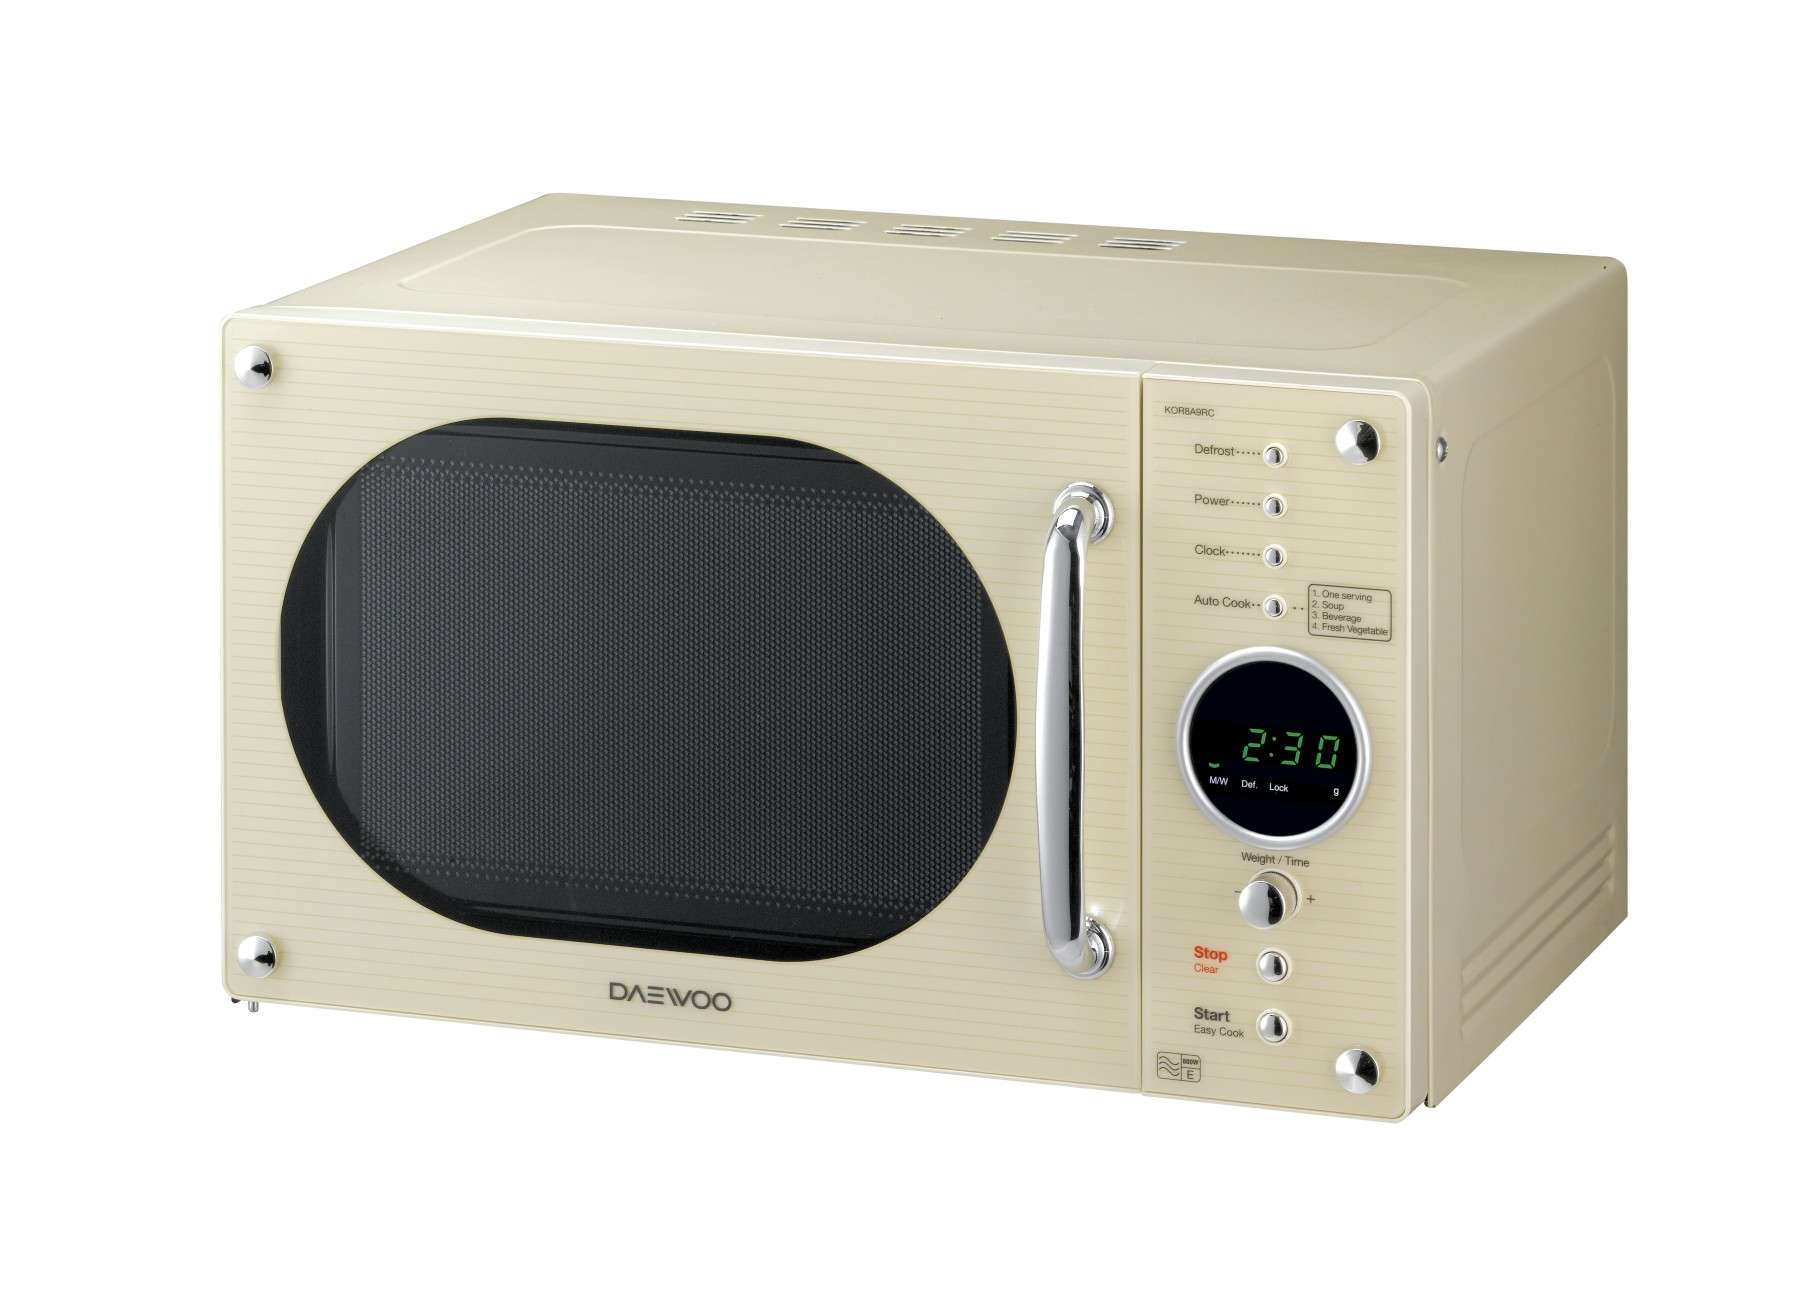 Retro Style Touch Control Microwave Daewoo Electronics